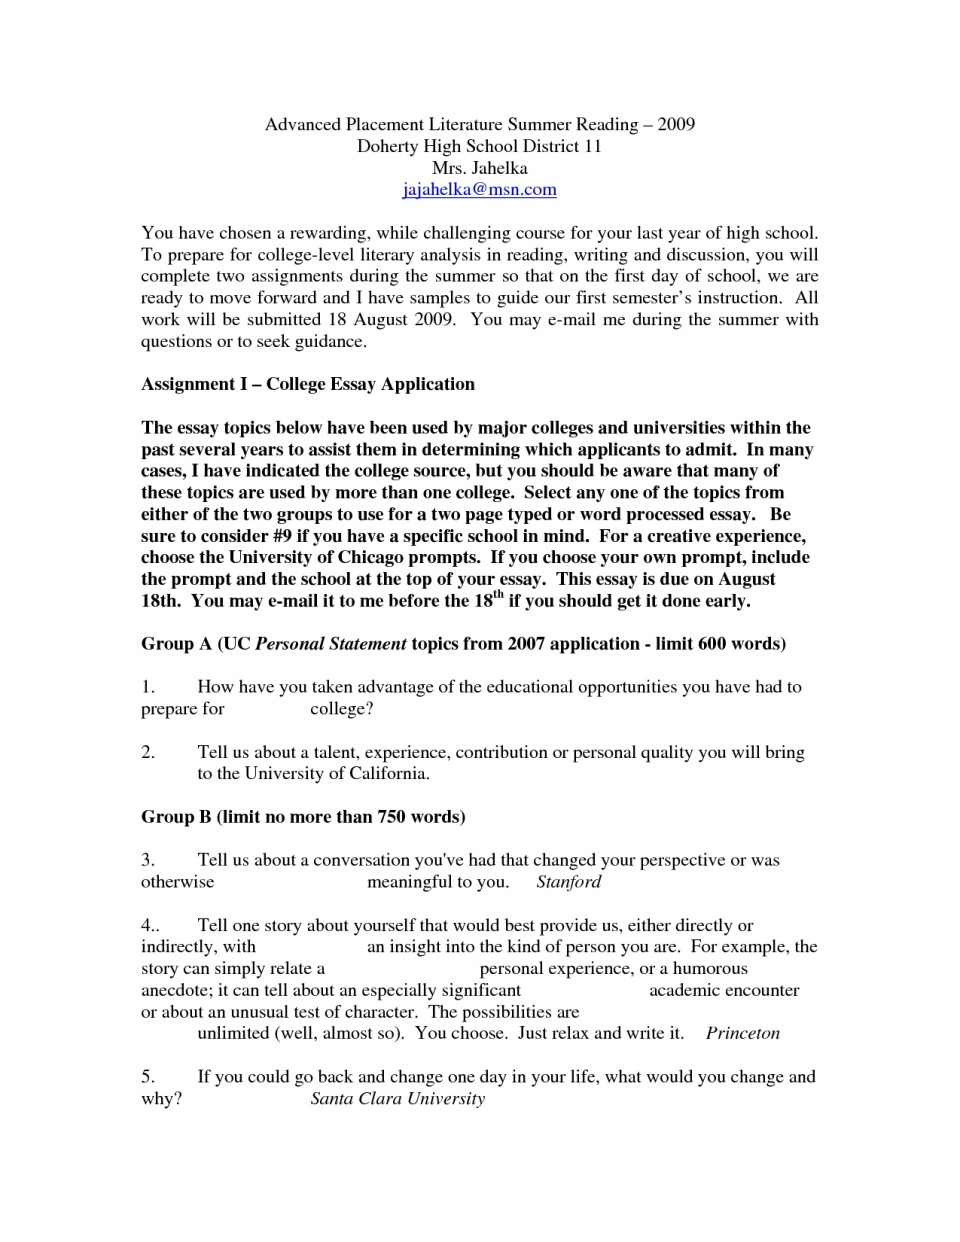 010 Essays For Middle School Ideas Of How To Write Good College Admissions Essay Admission With Best Humorous Shocking Informative Writing Leadership High Students 960